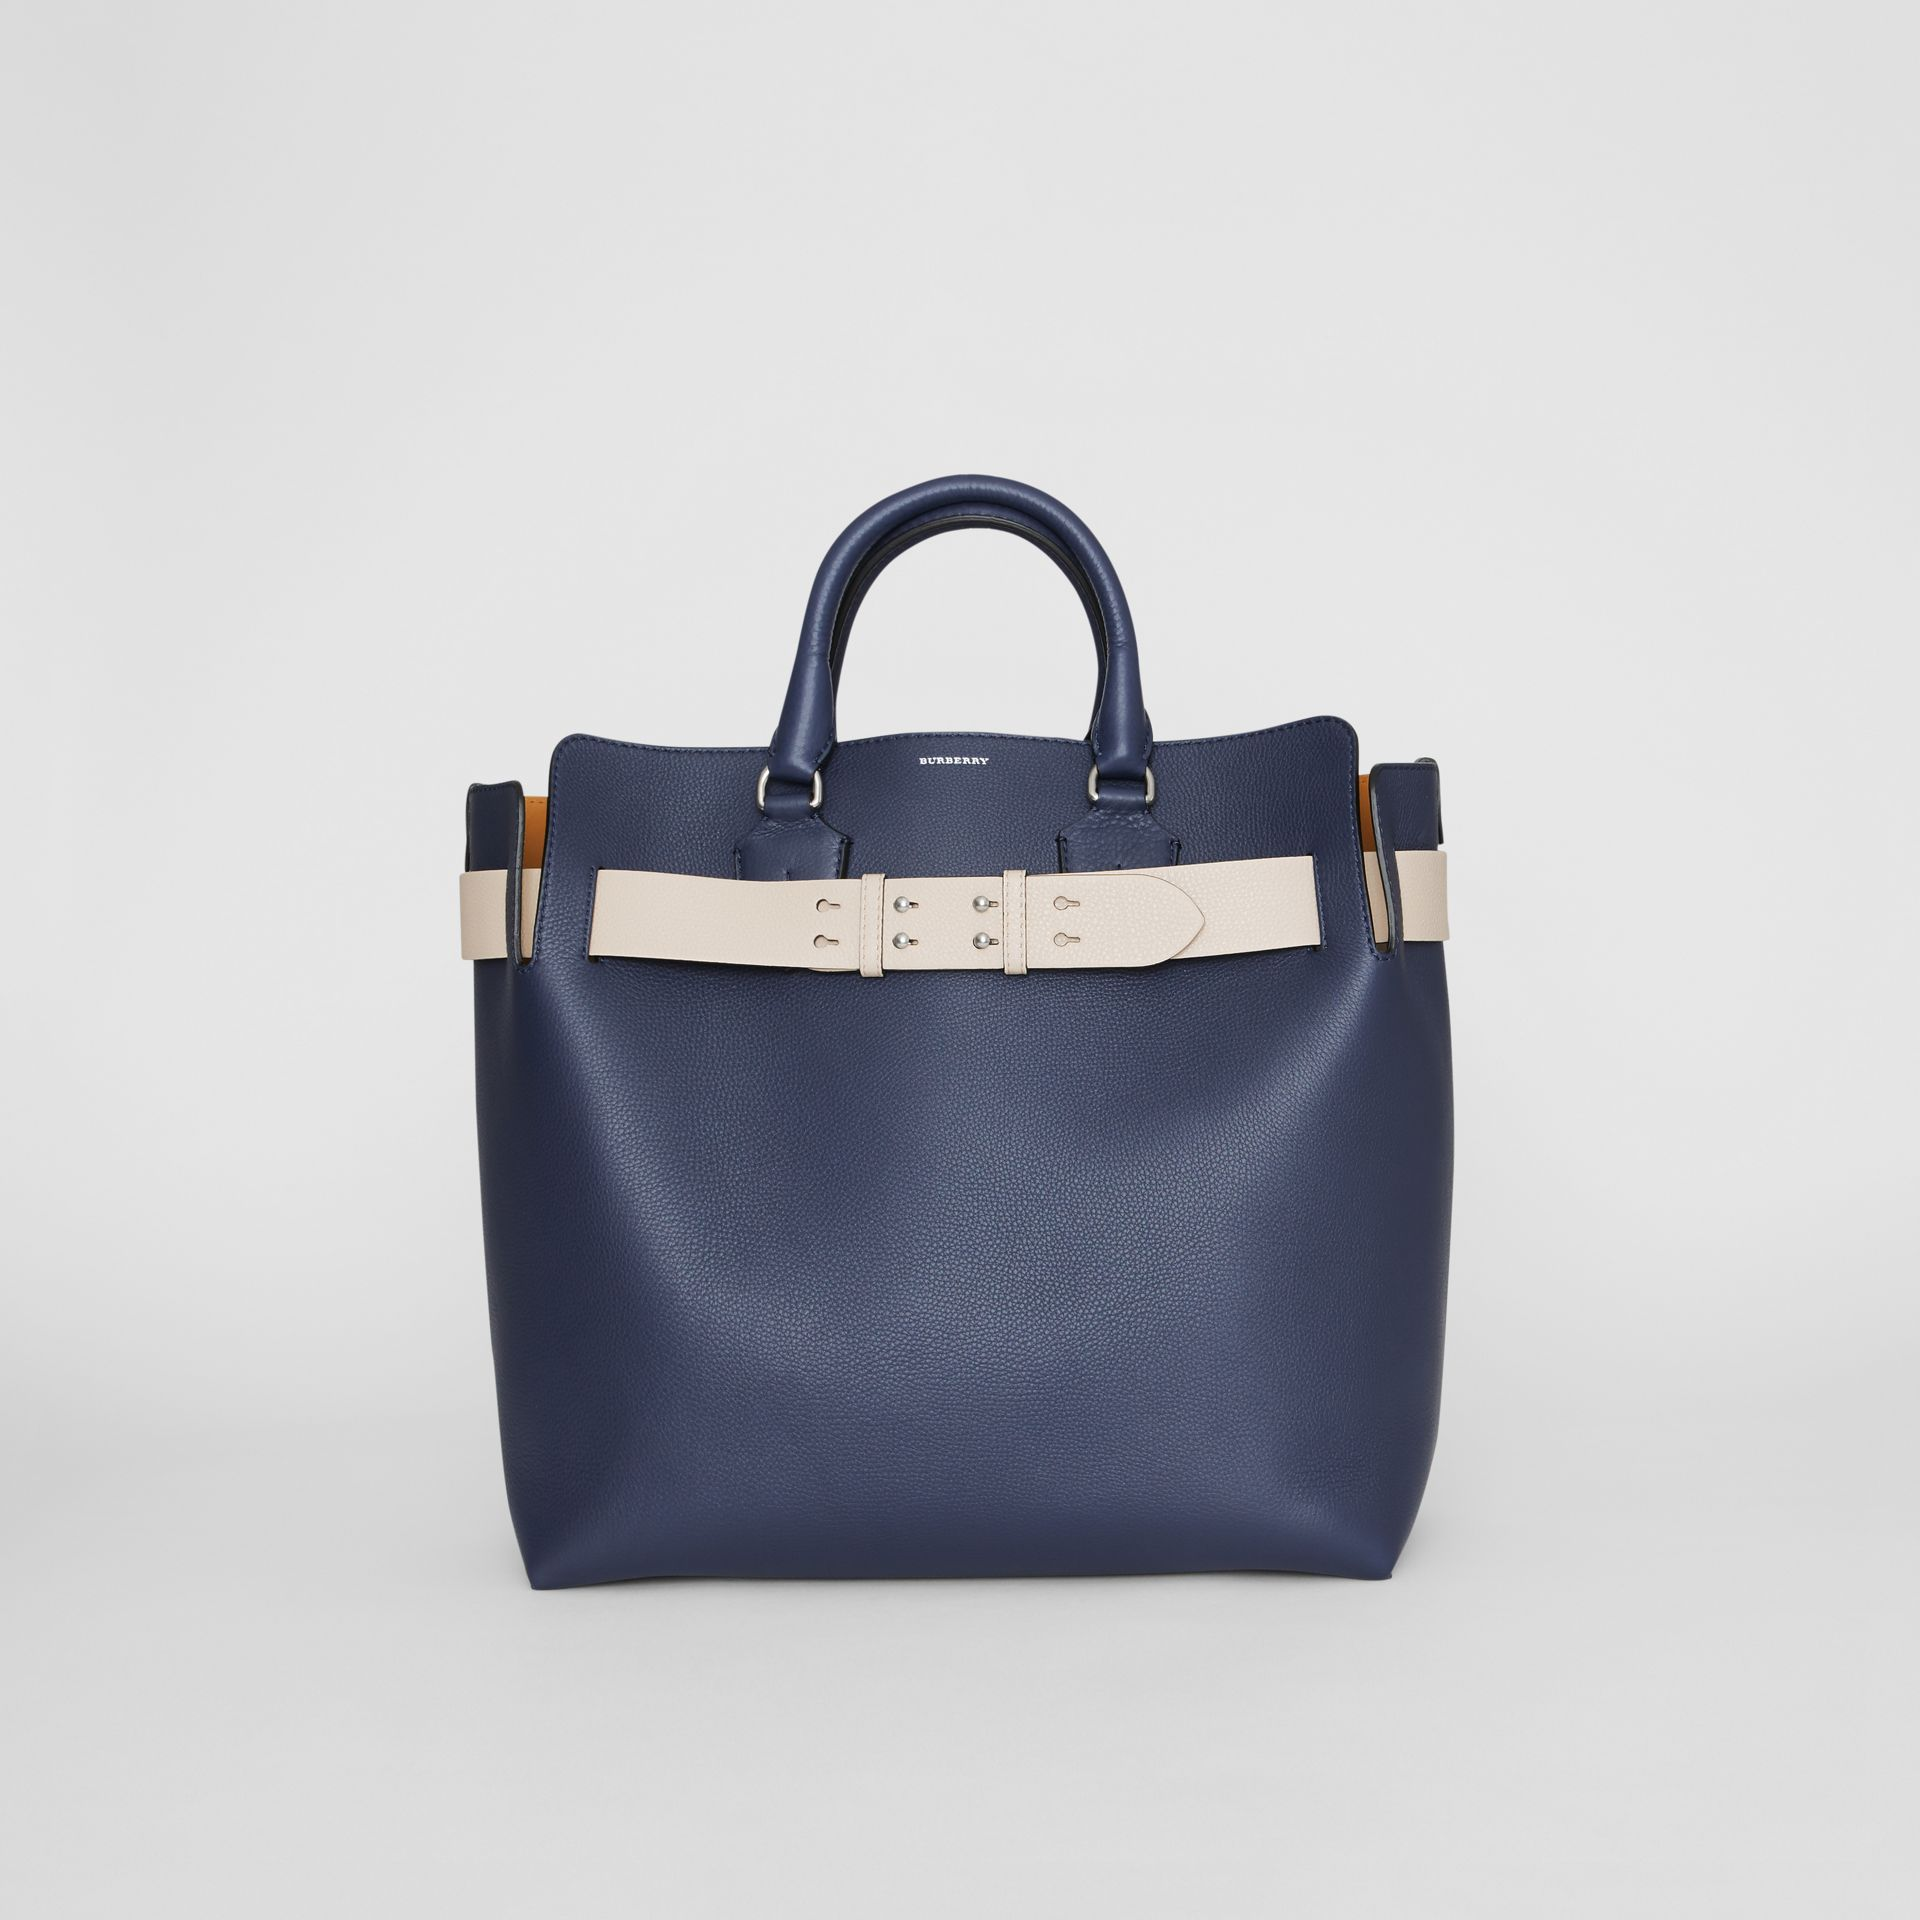 Grand sac The Belt en cuir (Bleu Régence) - Femme | Burberry - photo de la galerie 0